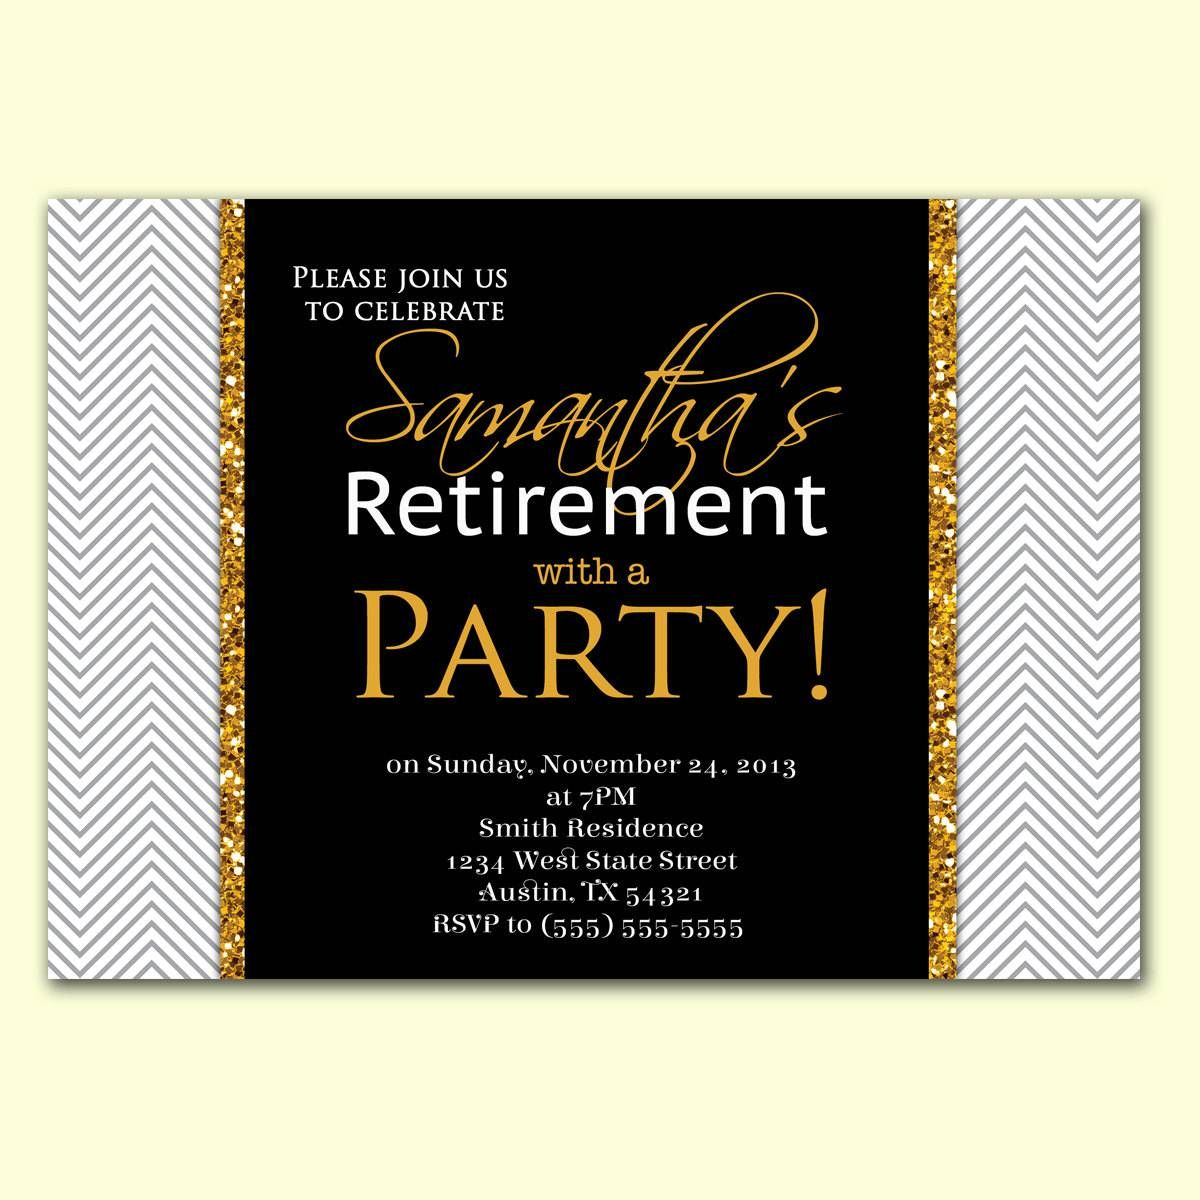 Retirement Party Invitation Wording In Hindi Invites Pinterest - Retirement party invitations templates